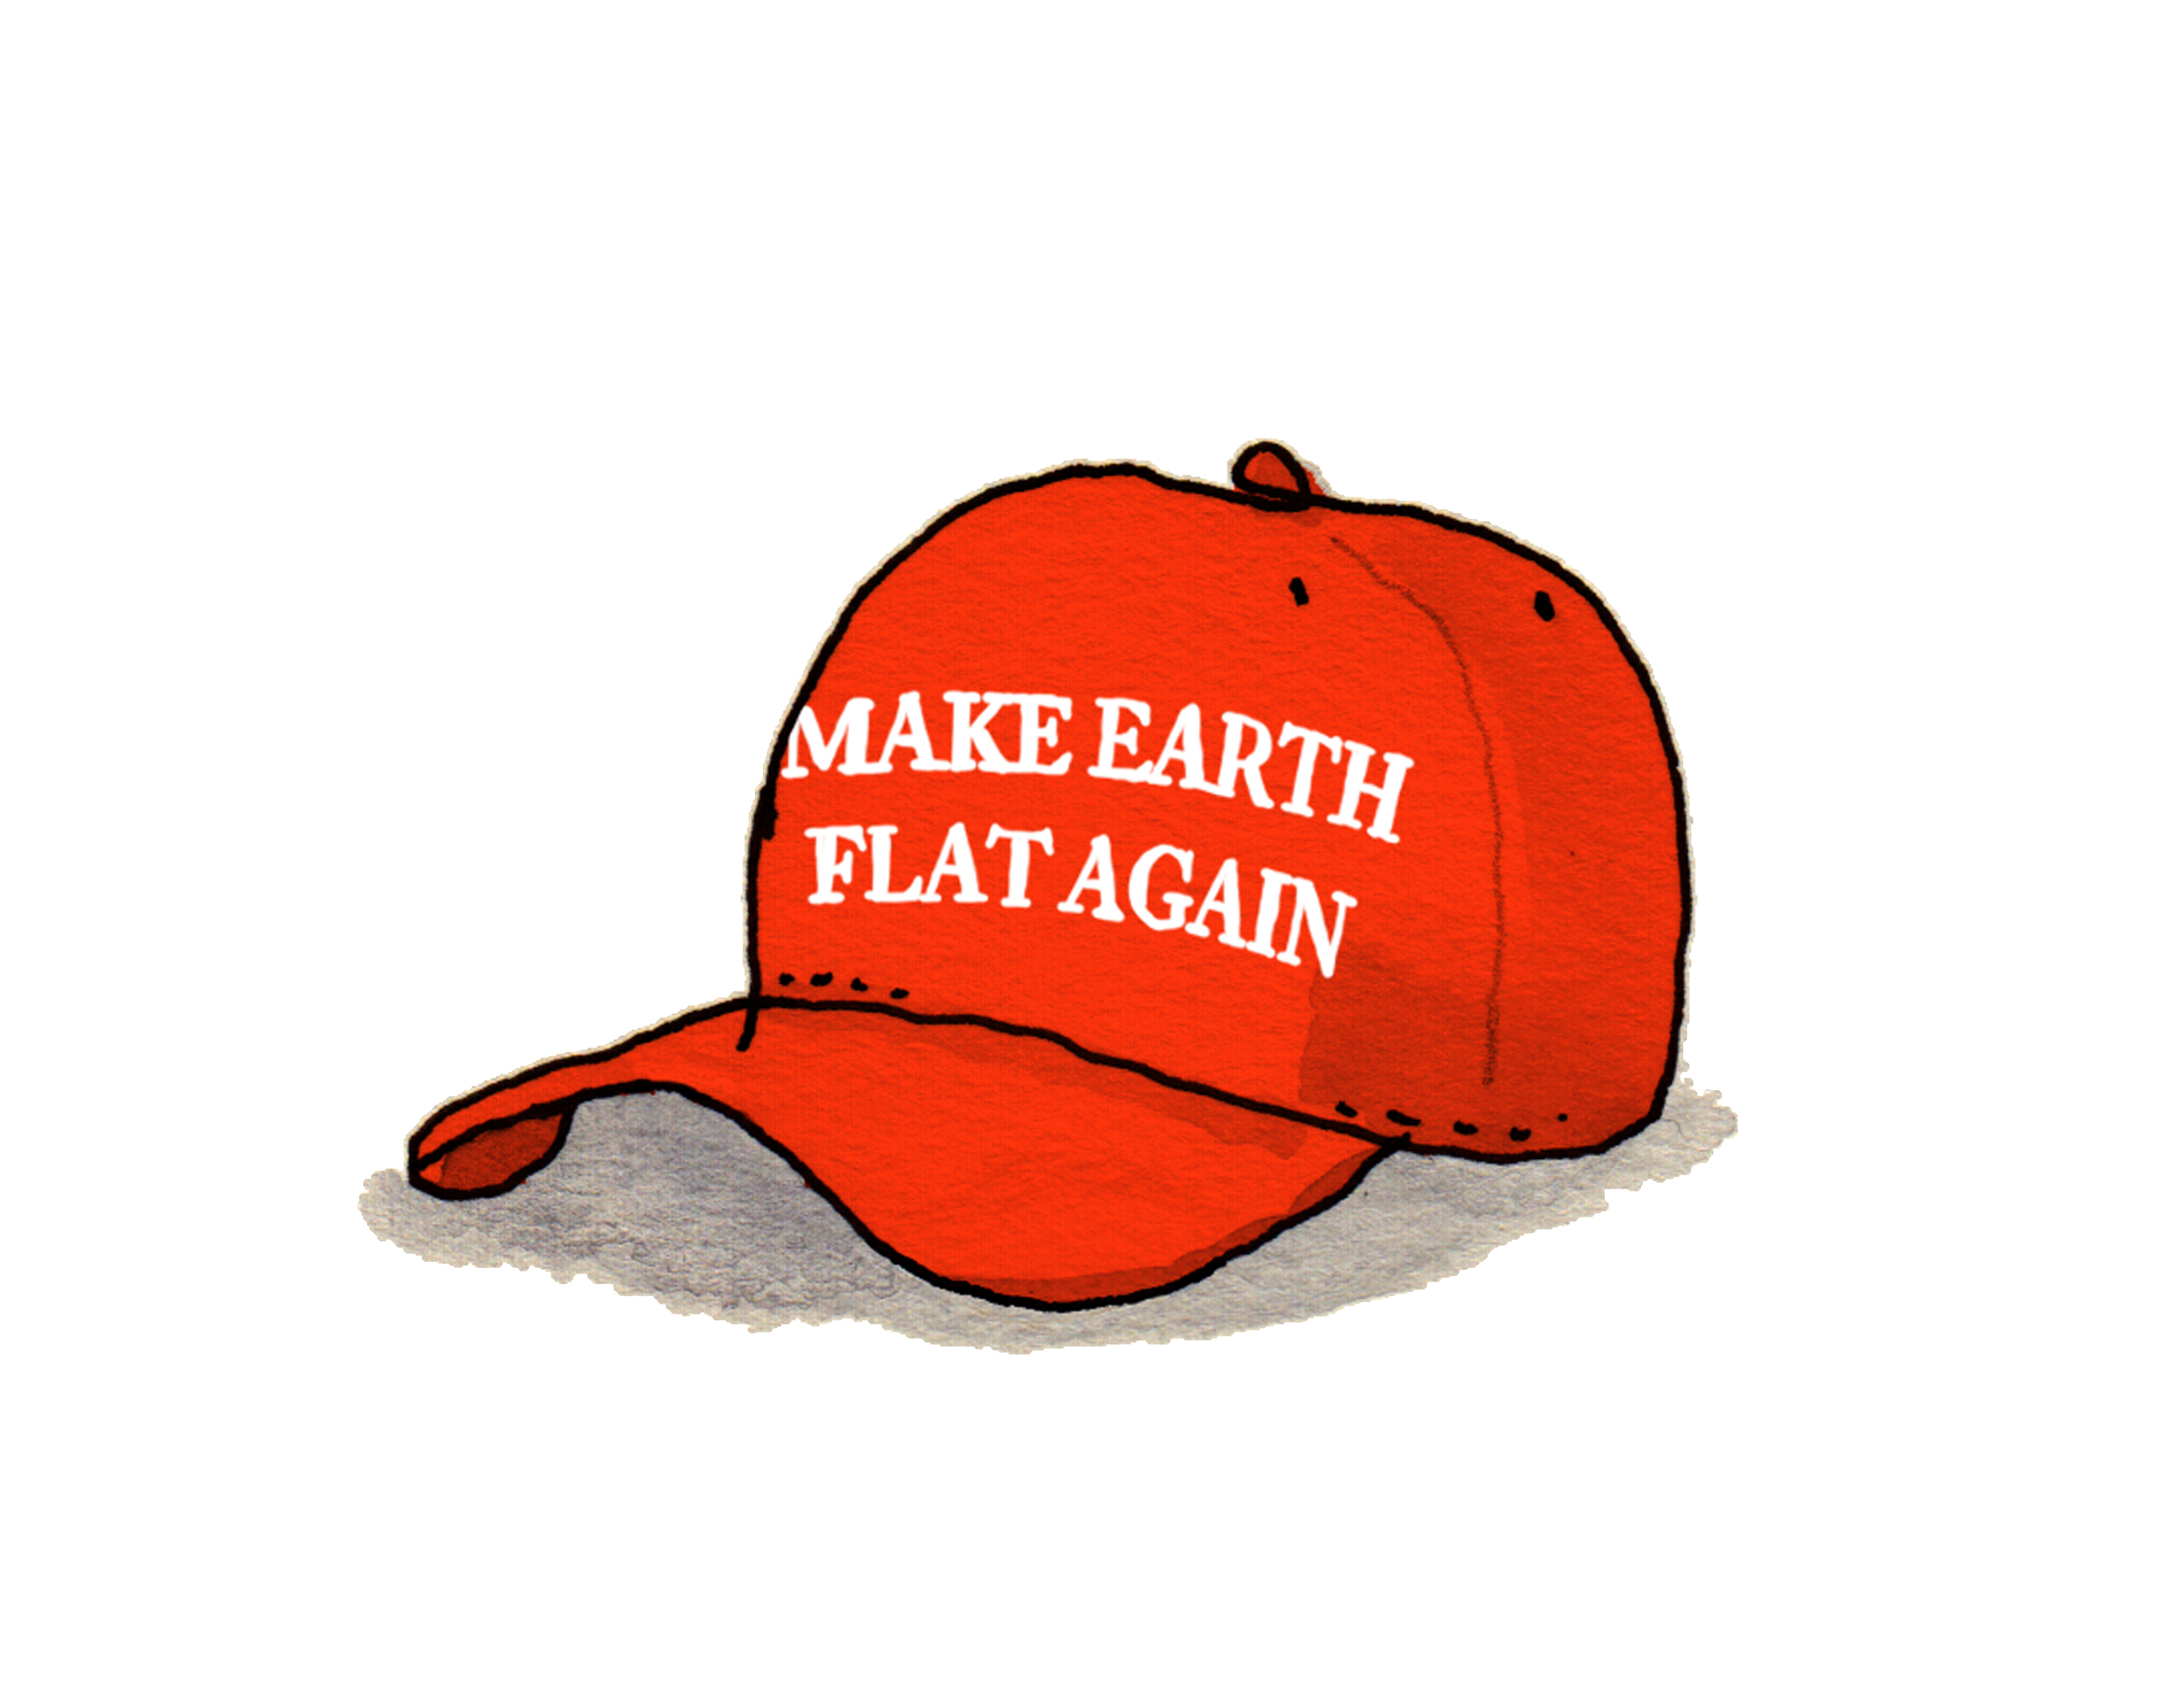 """<b><a href=""""https://www.technologyreview.com/s/603350/will-science-have-a-seat-at-president-trumps-table/"""">Will Science Have a Seat at President Trump's Table?</a></b> <br> Illustration by Victor Kerlow"""